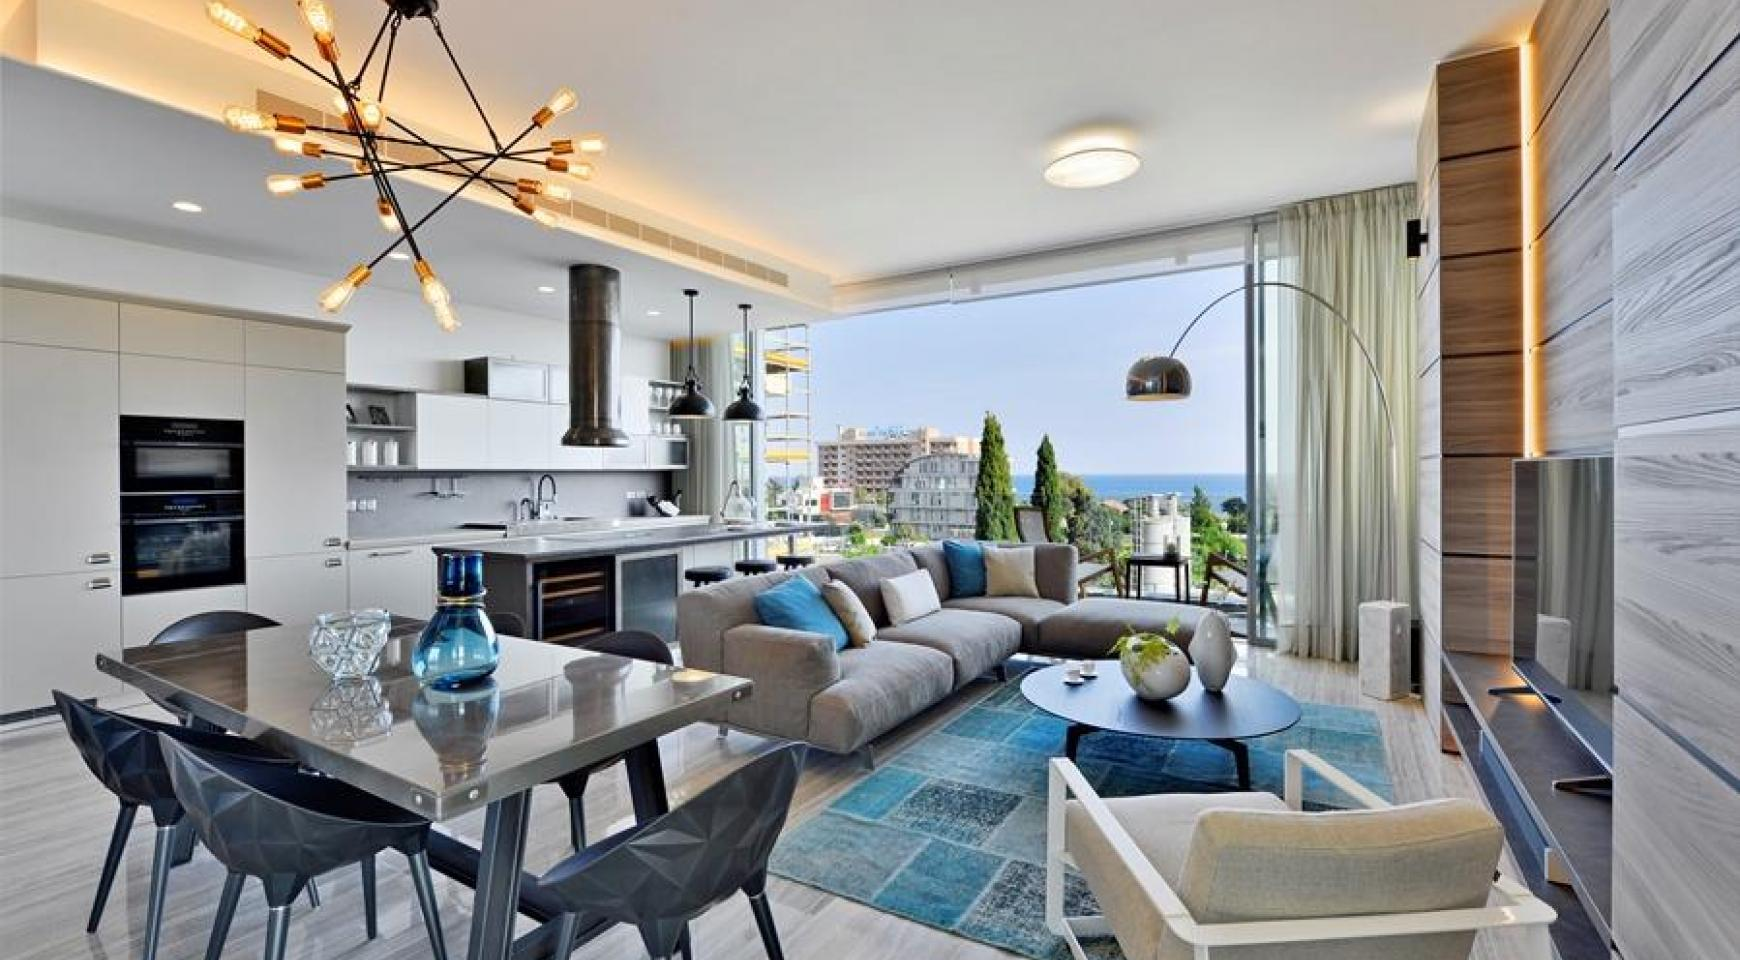 Luxurious Duplex Apartment with Private Roof Garden near the Sea - 1